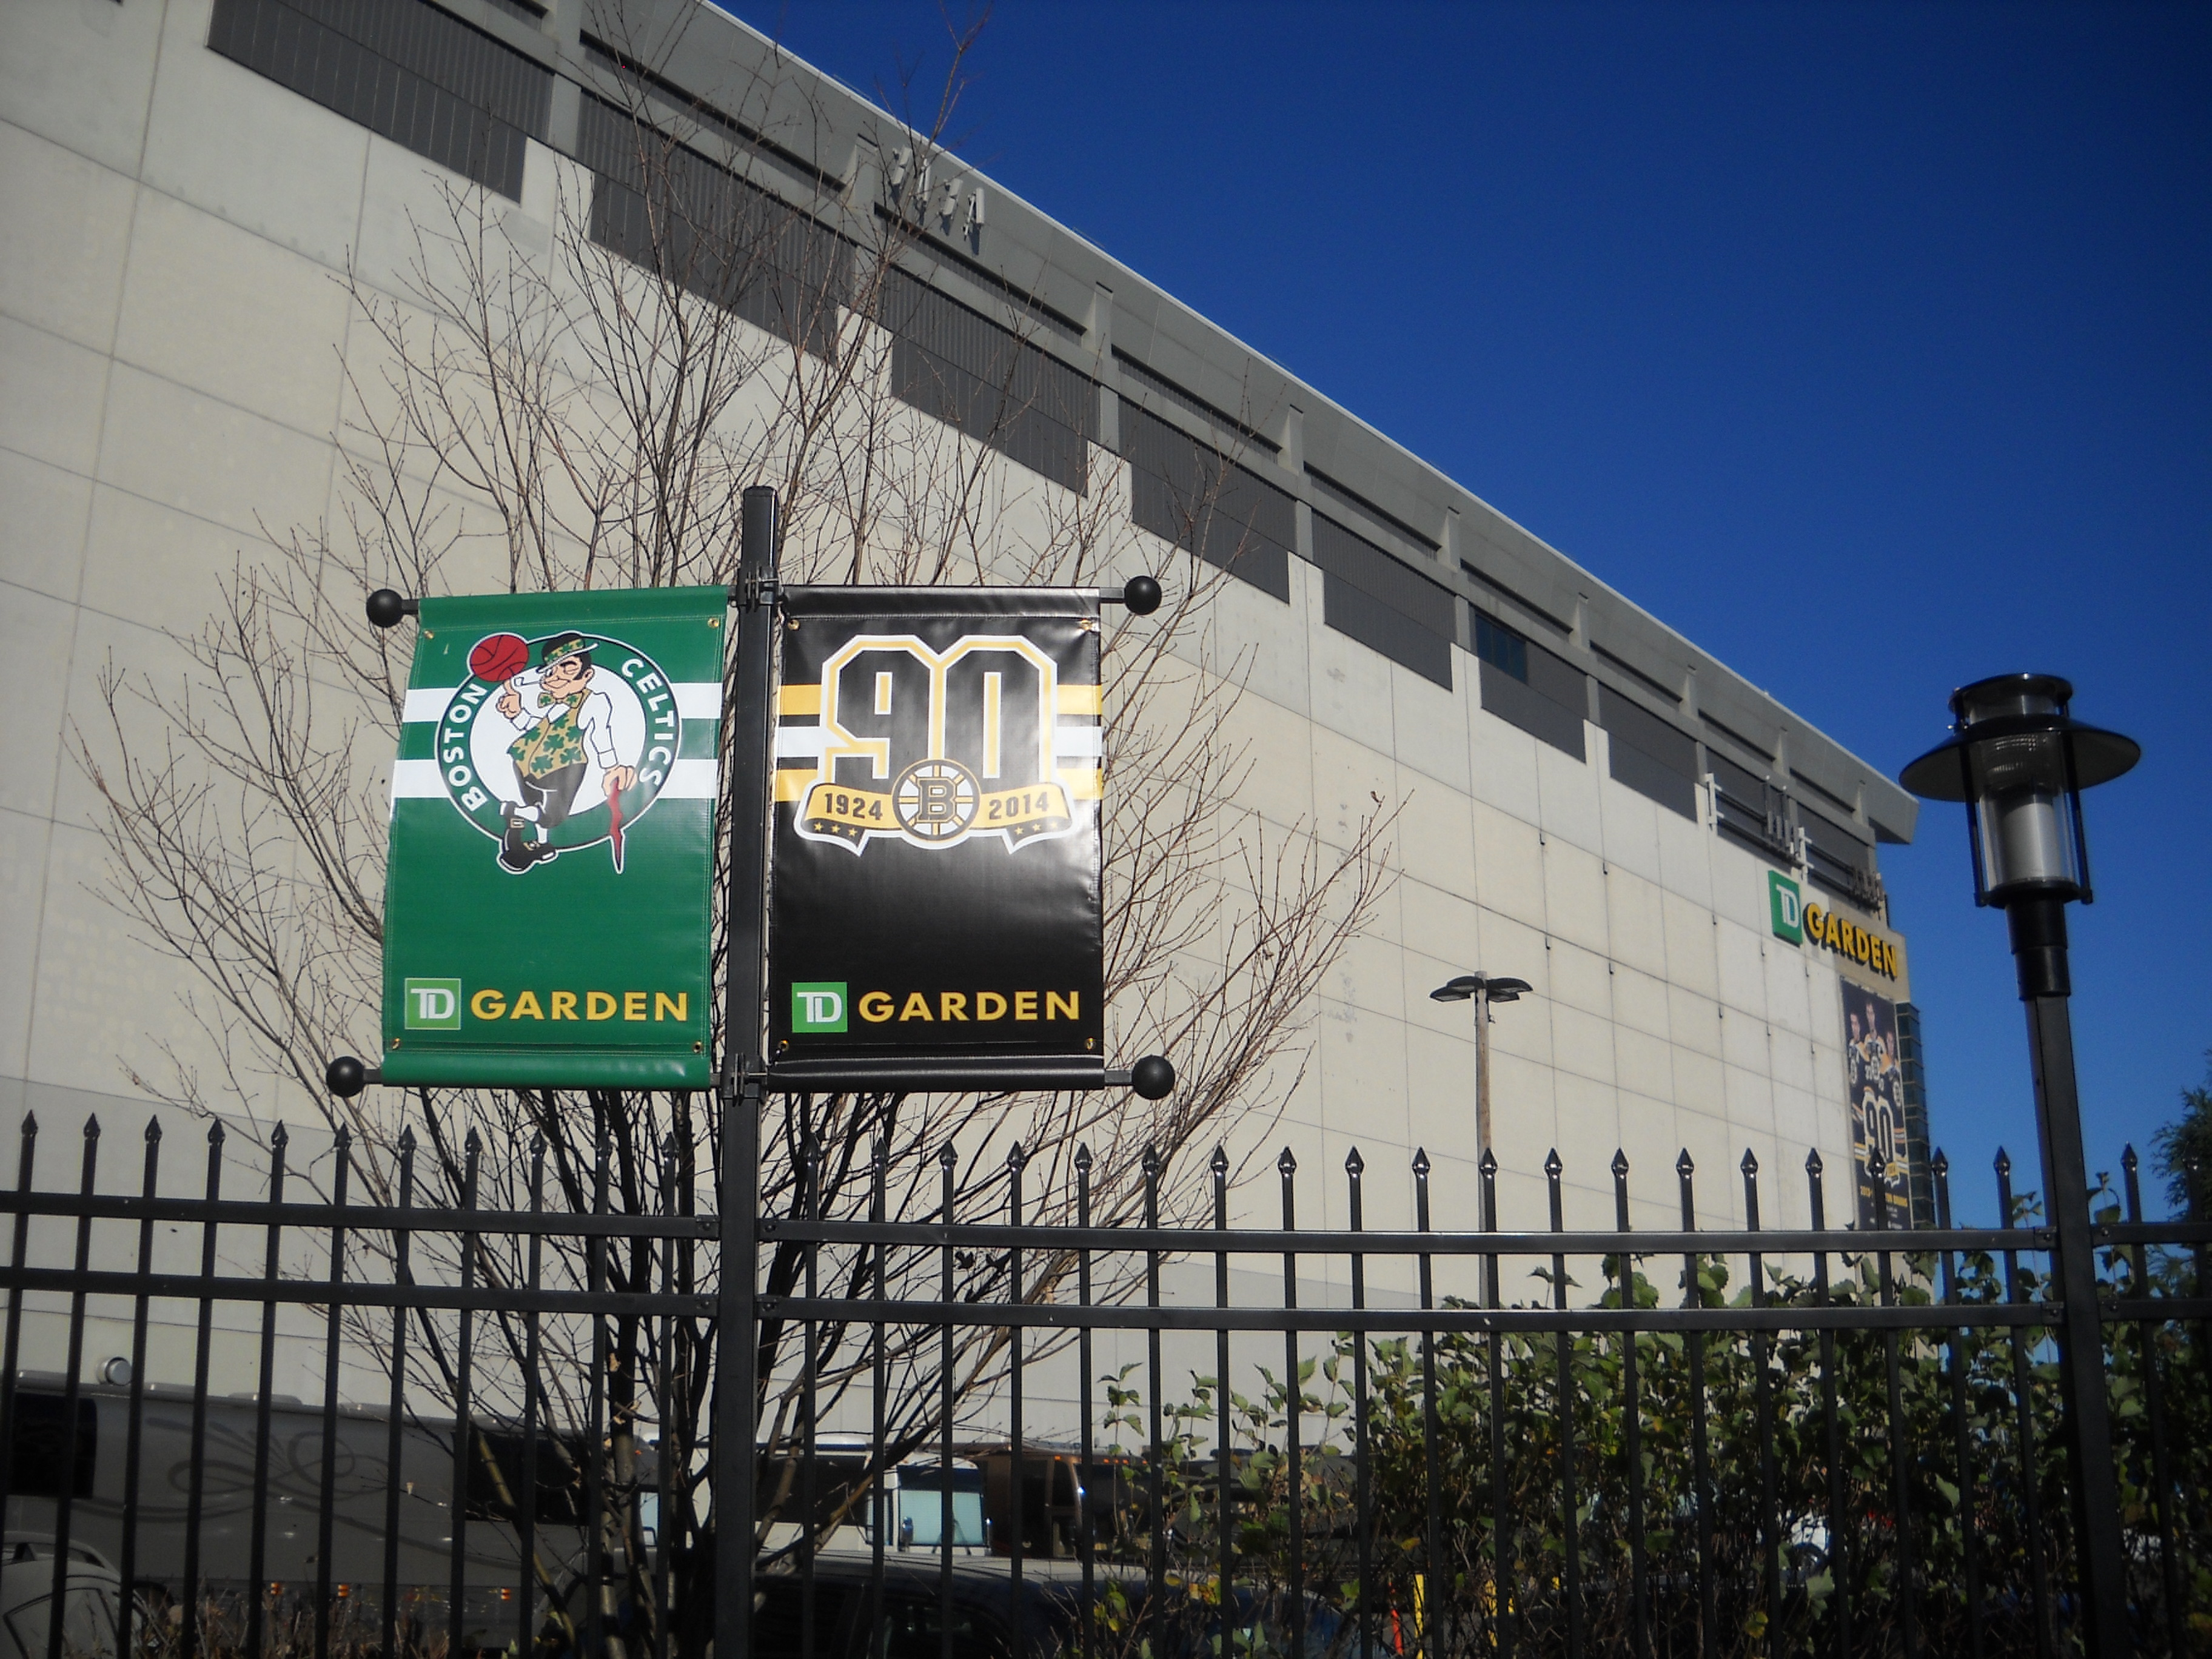 Where To Park If Going Td Garden Best Idea Garden